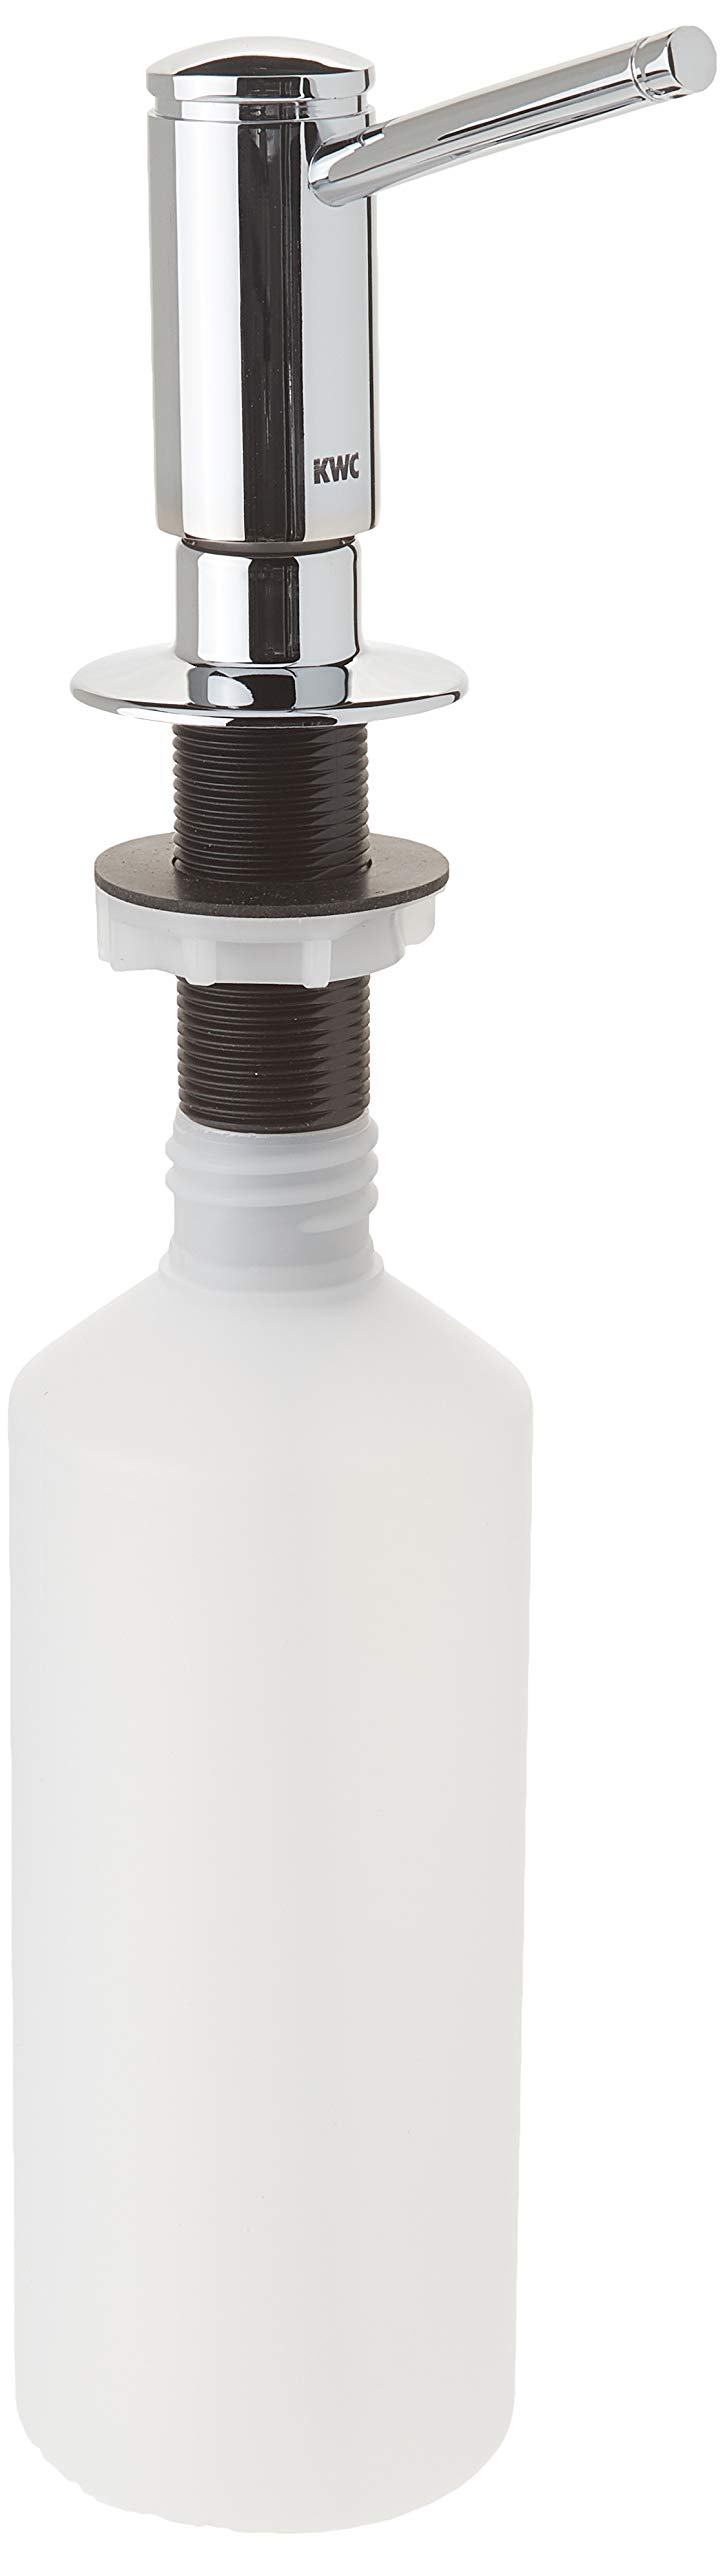 KWC Faucets Z.504.938.000 PRIMO Soap Dispenser, 3-1/4'', Chrome by KWC Faucets (Image #1)